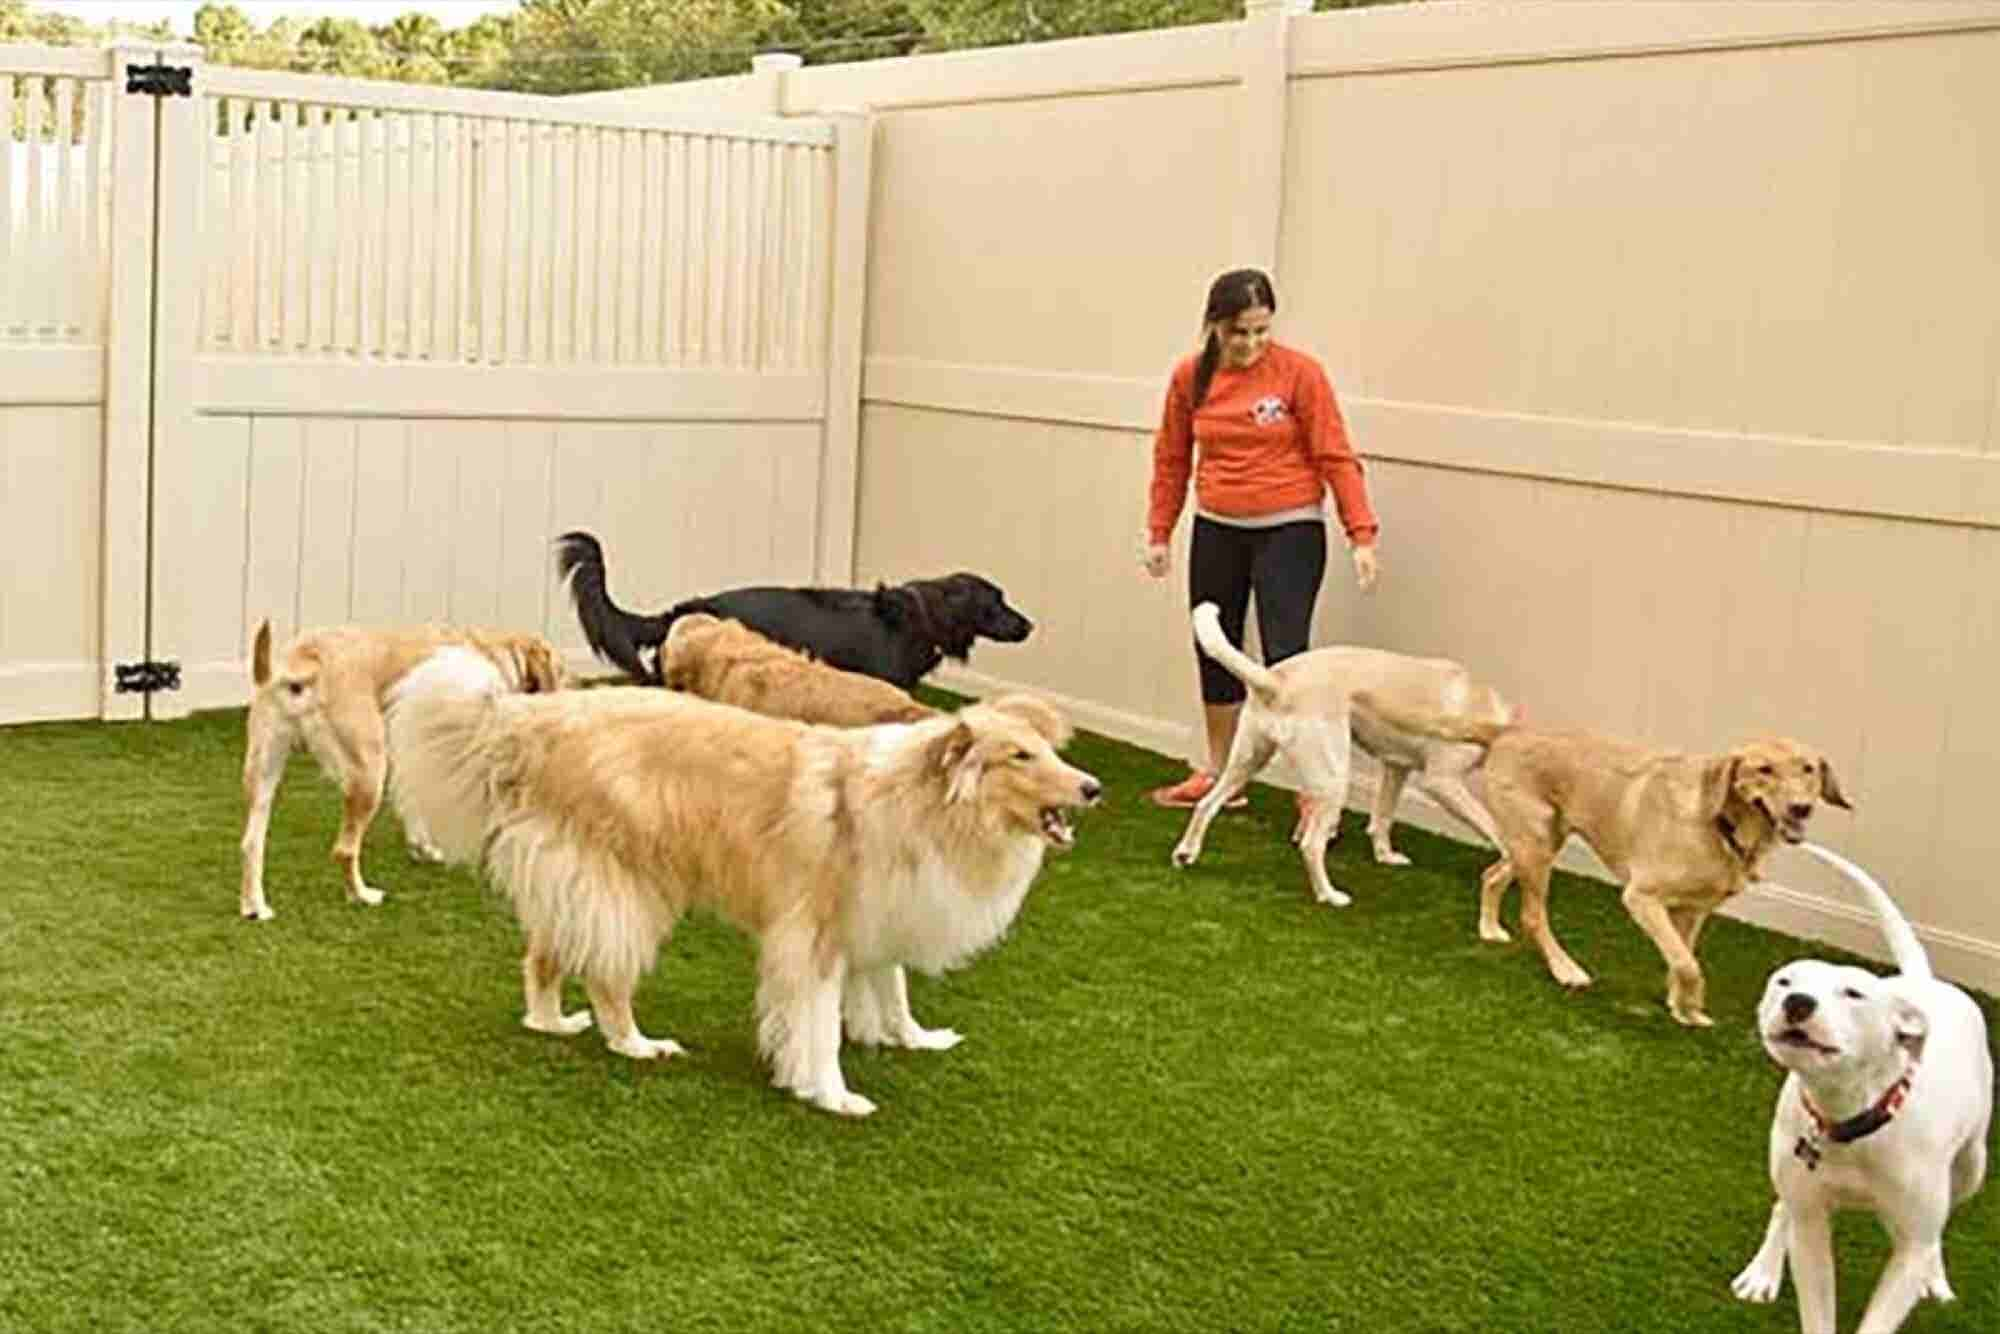 Franchise of the Day: Make Sure Your Pup Has a Fun Friday, Too